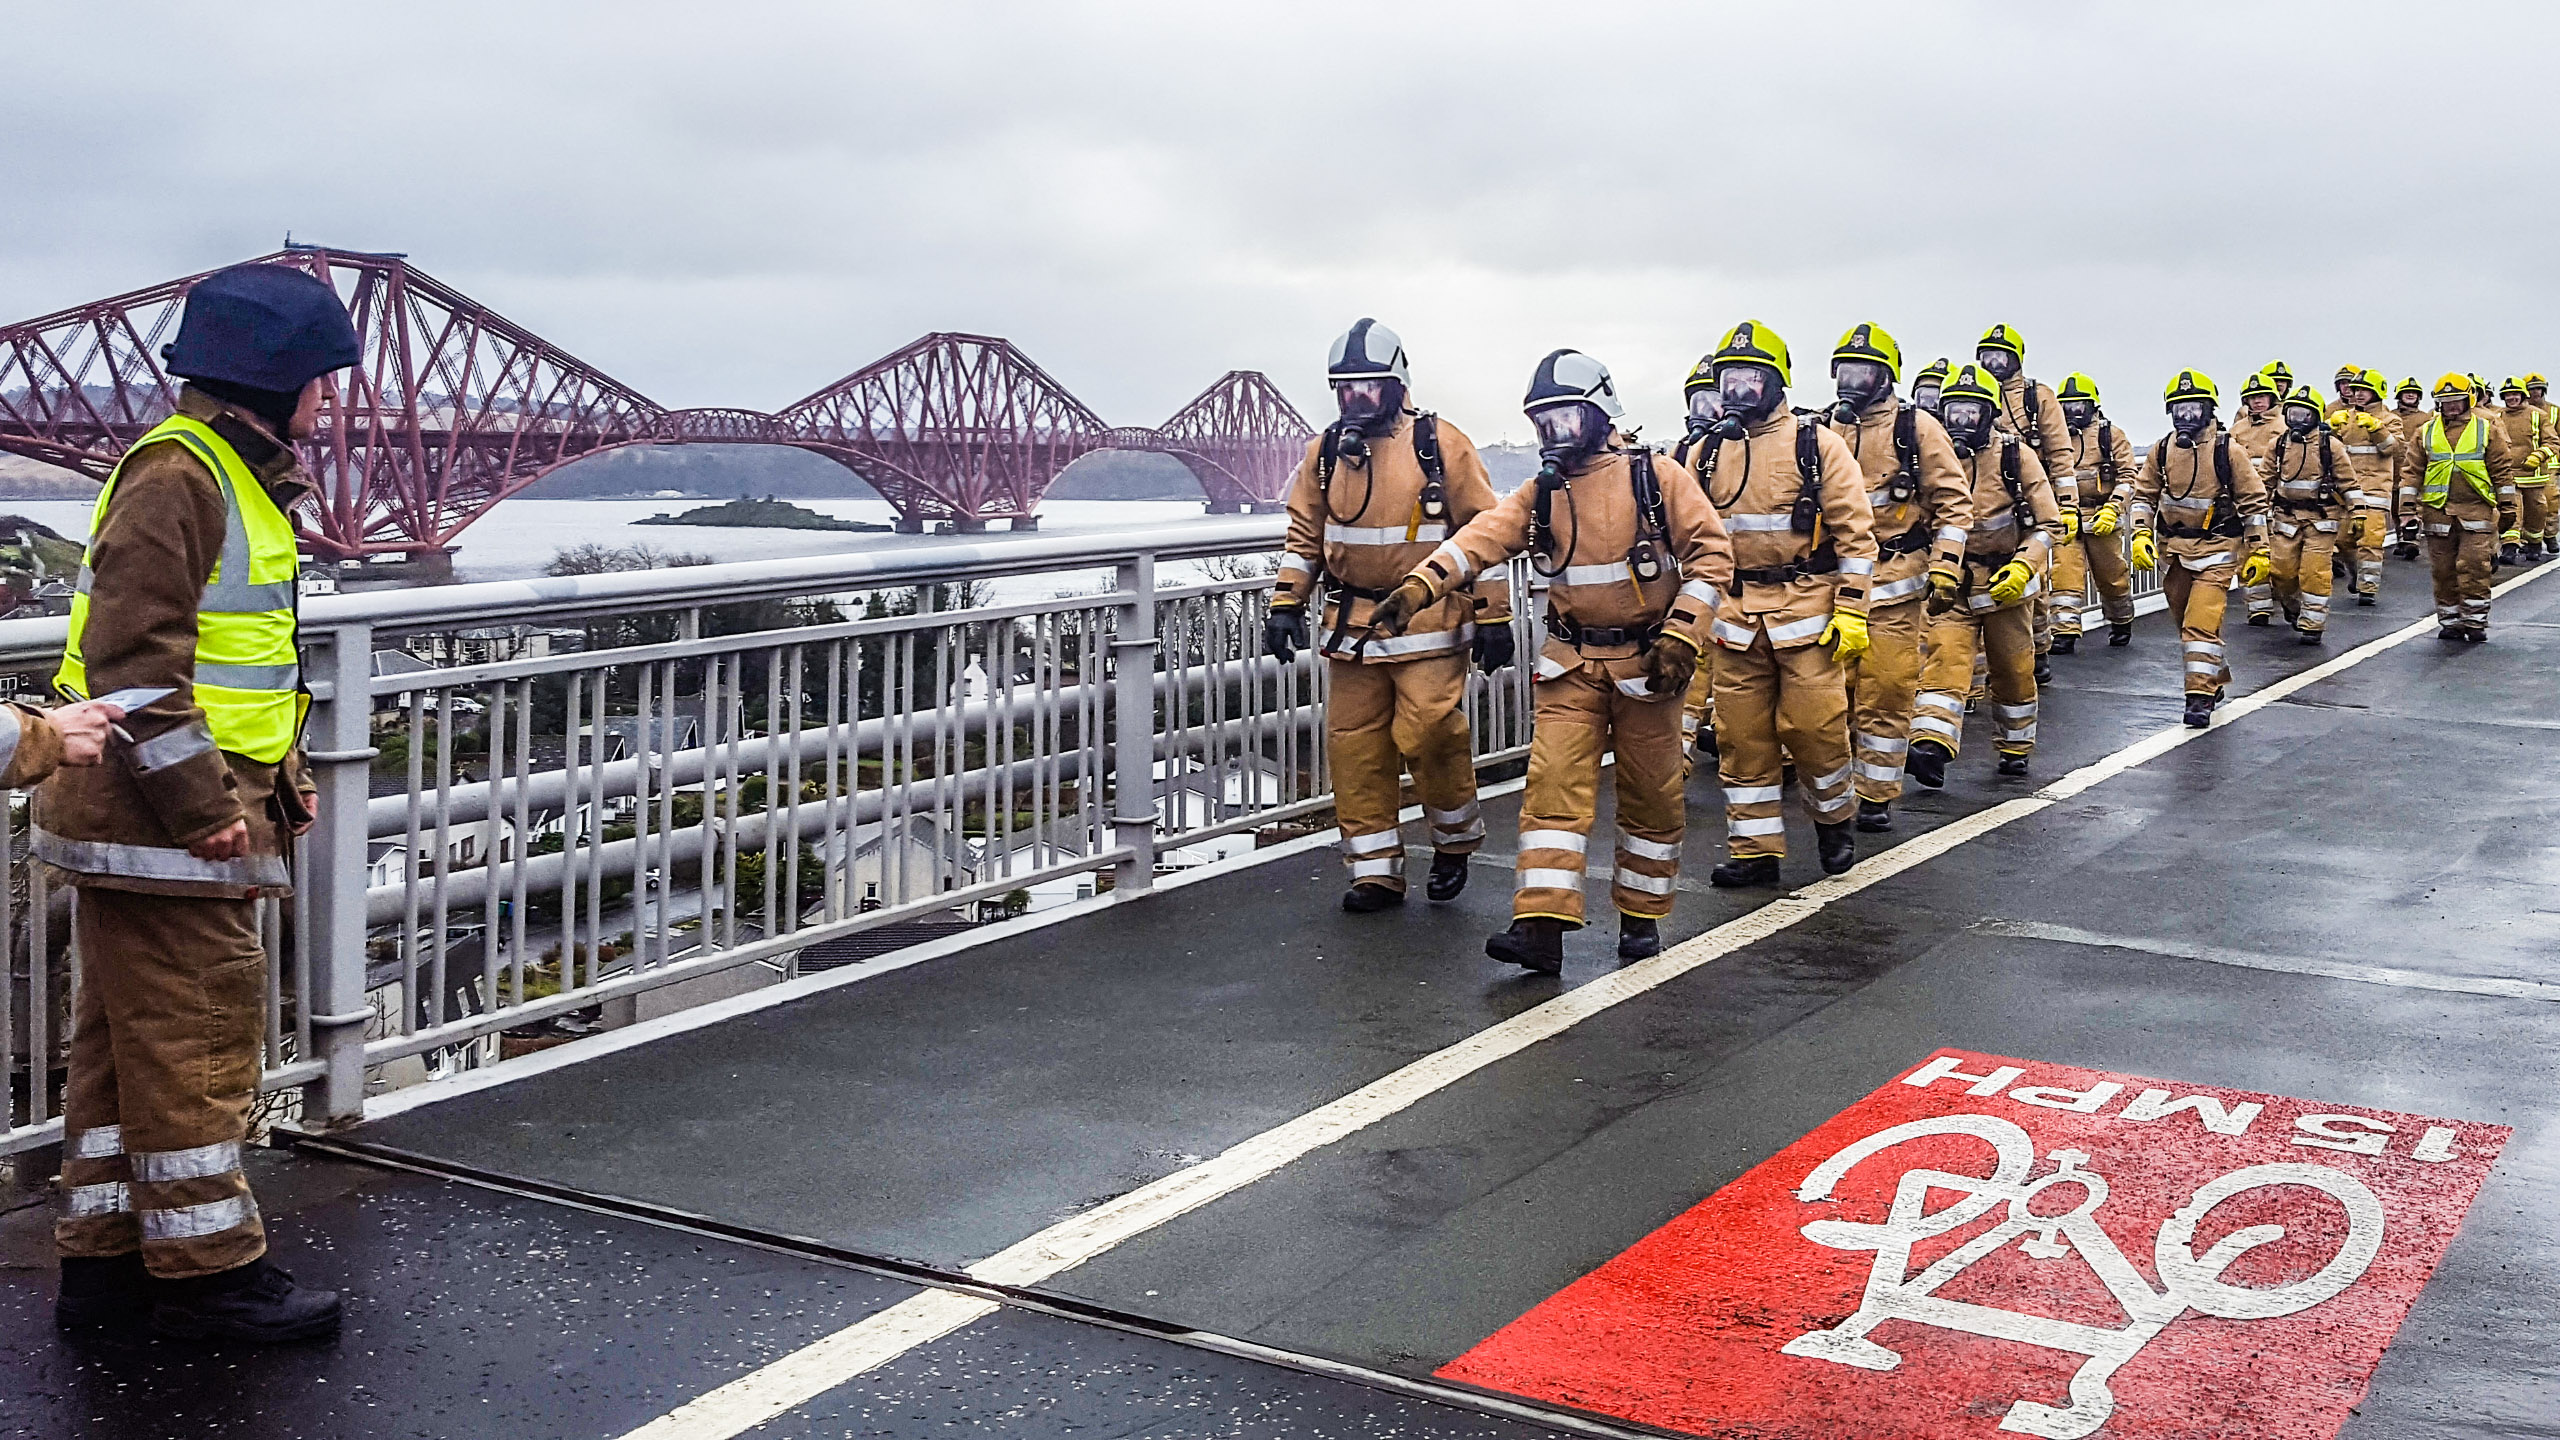 Firefighters go Forth in full BA kit